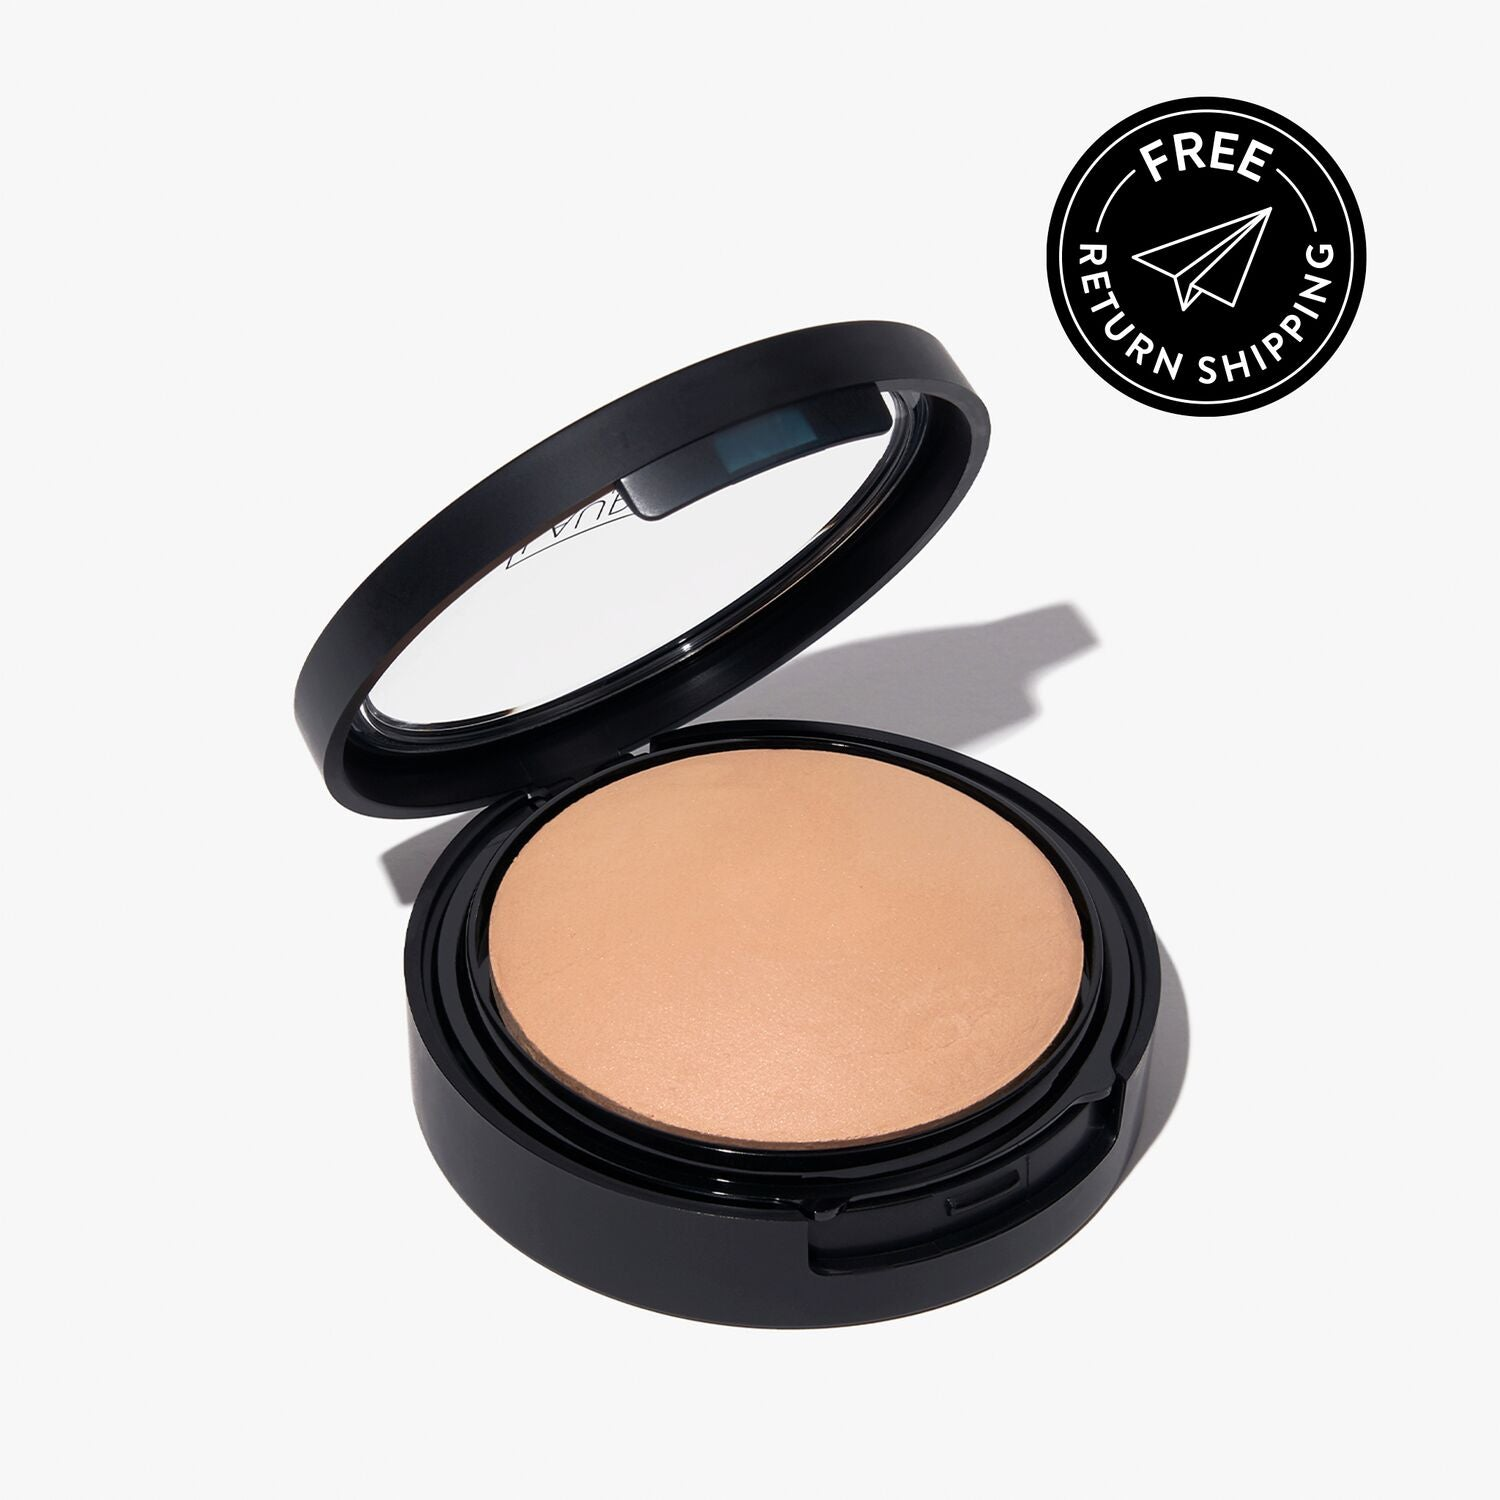 Double Take Baked Versatile Powder Foundation